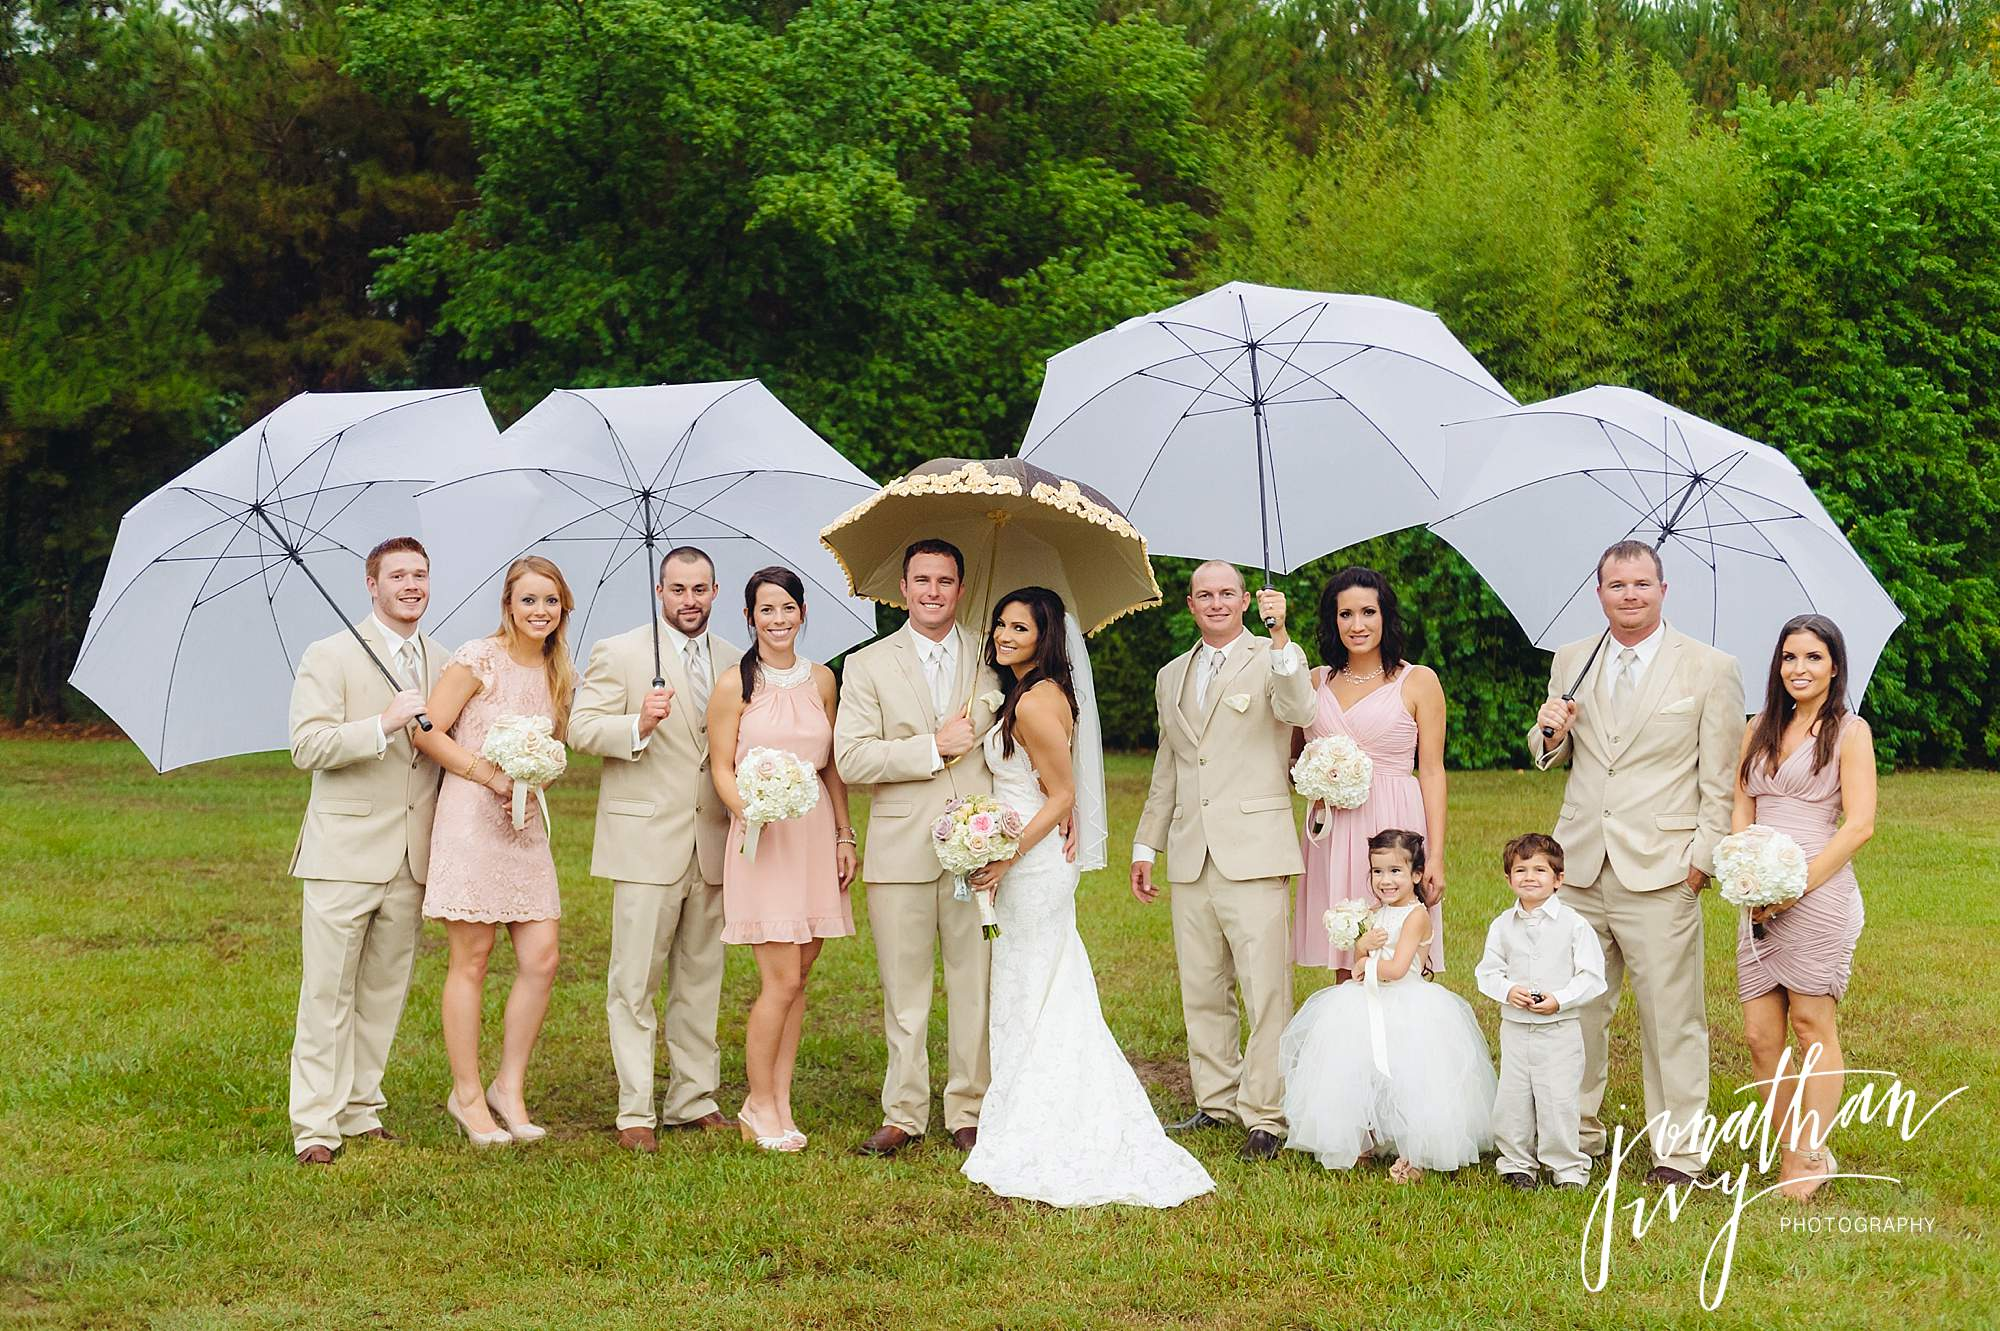 Umbrellas Wedding Party Group Shot